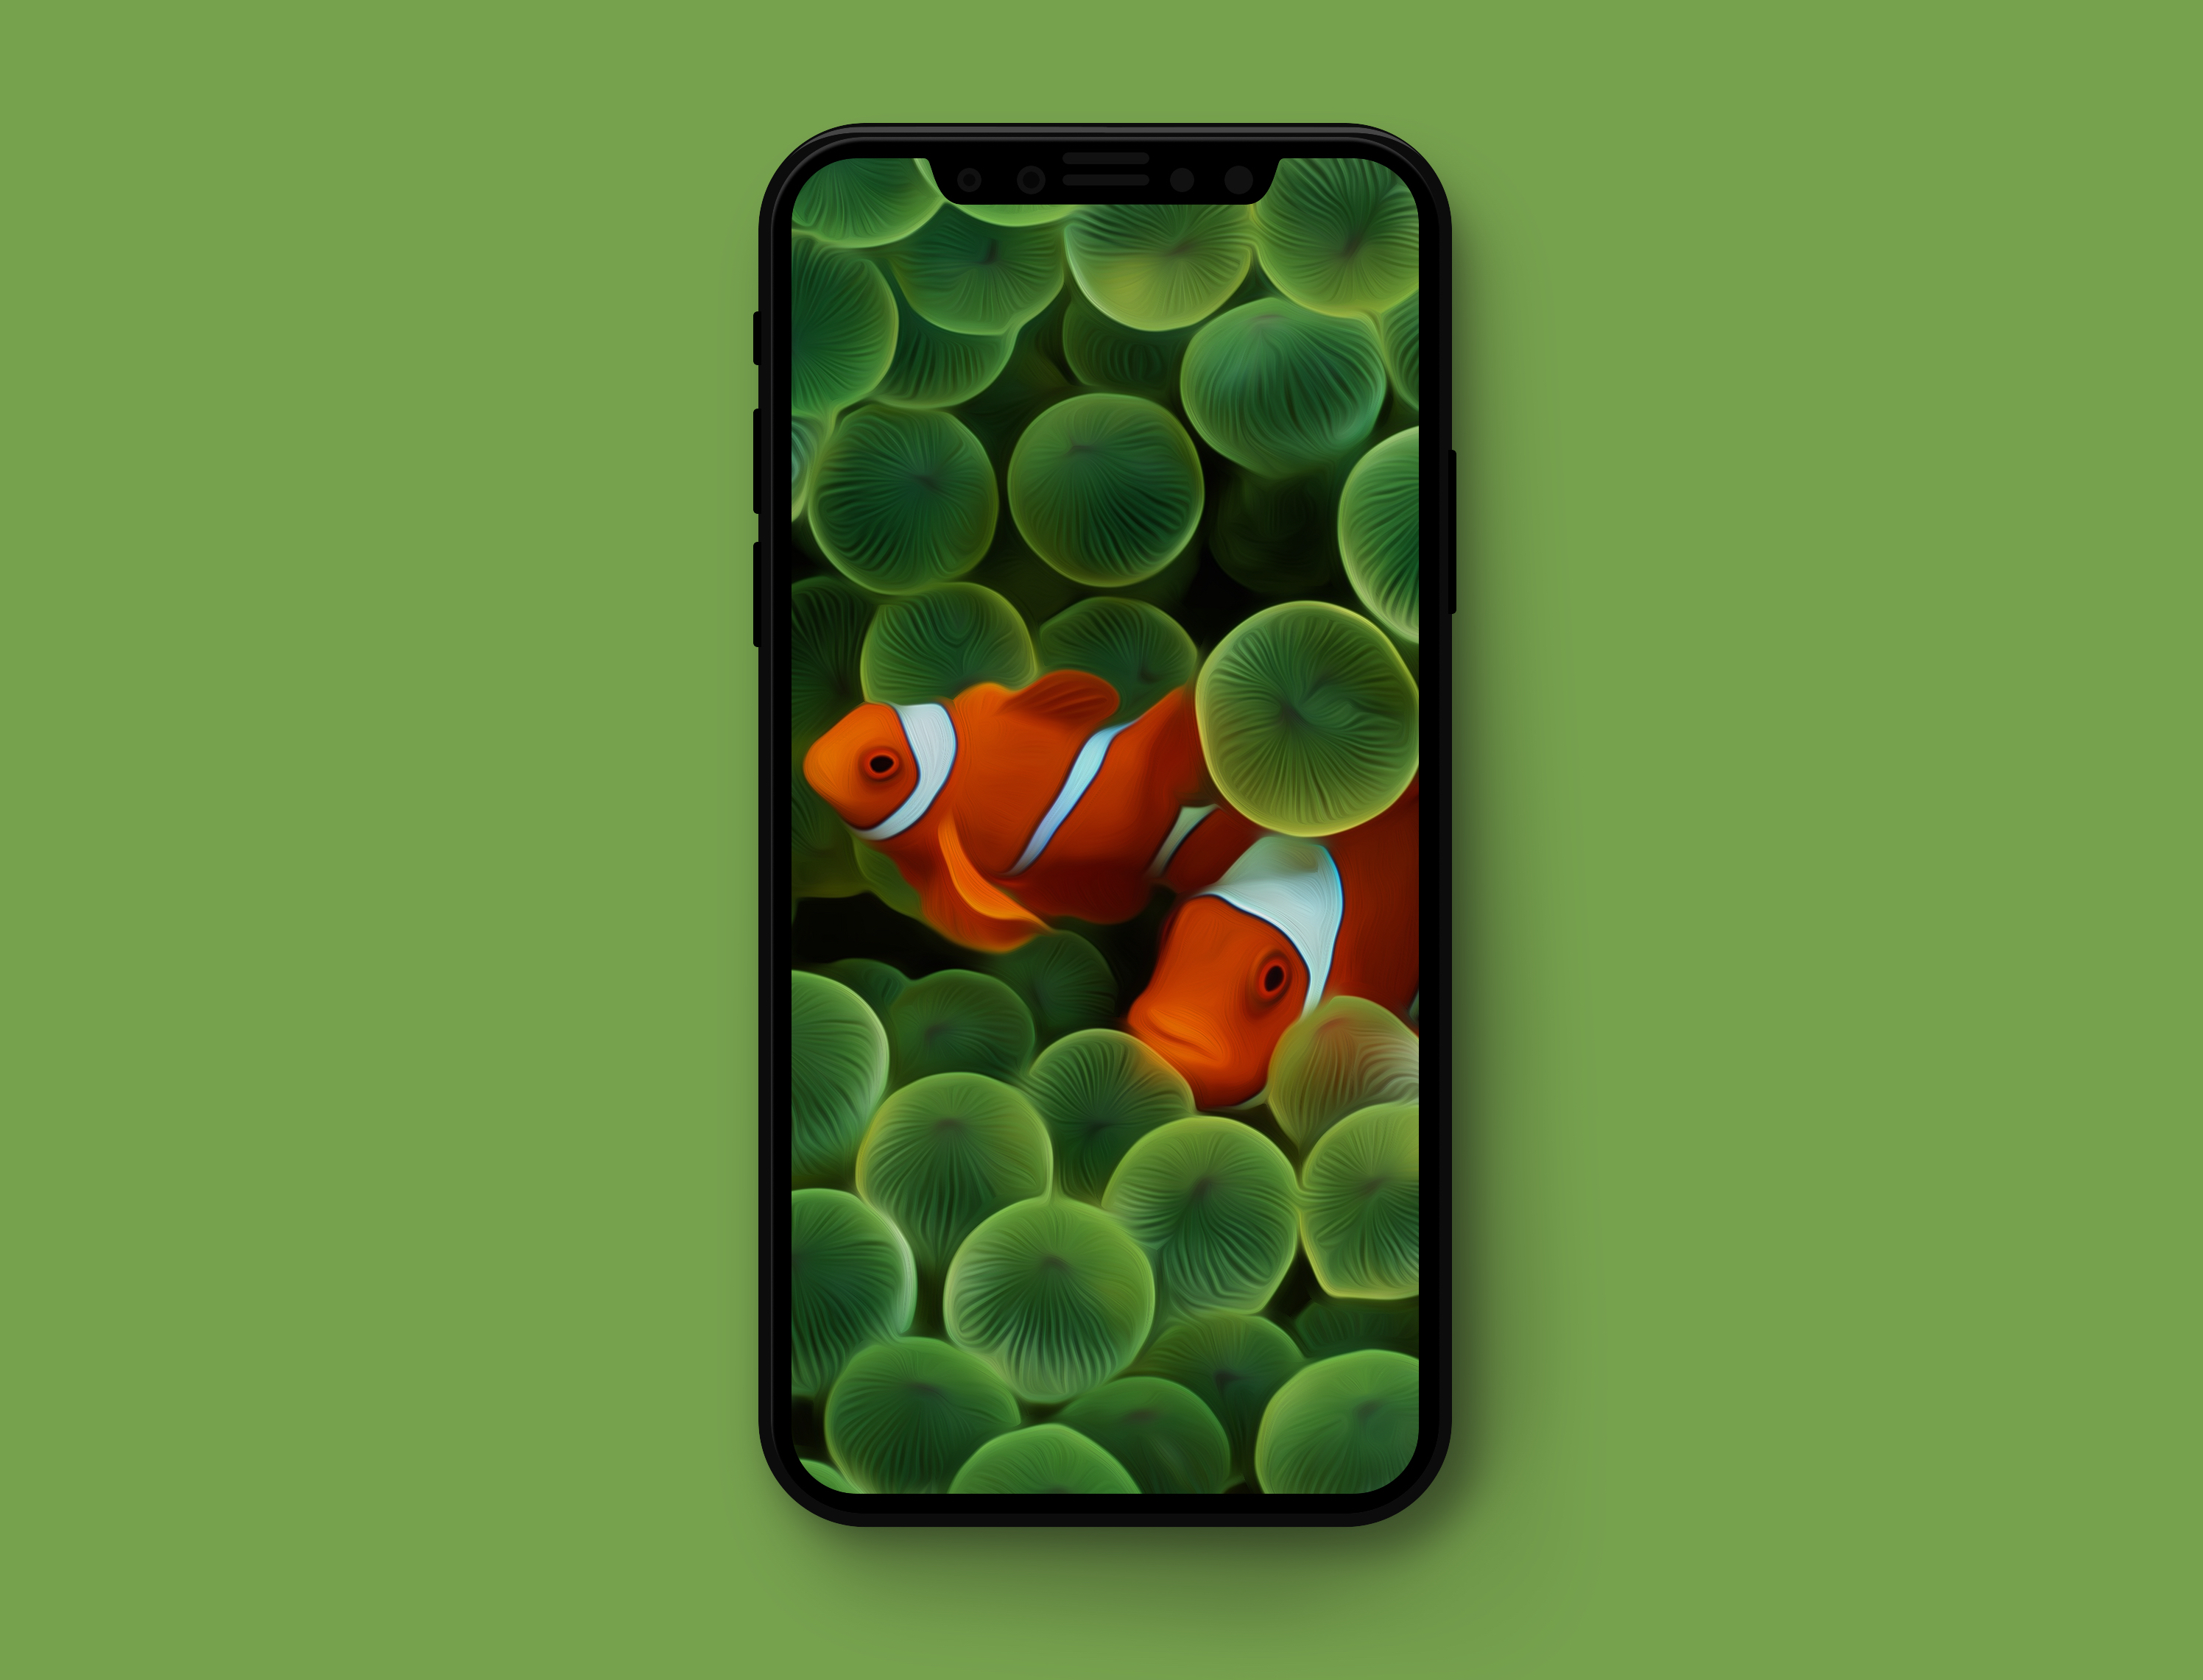 370 Wallpapers Para Iphone: Original Apple Wallpapers Optimized For IPhone X